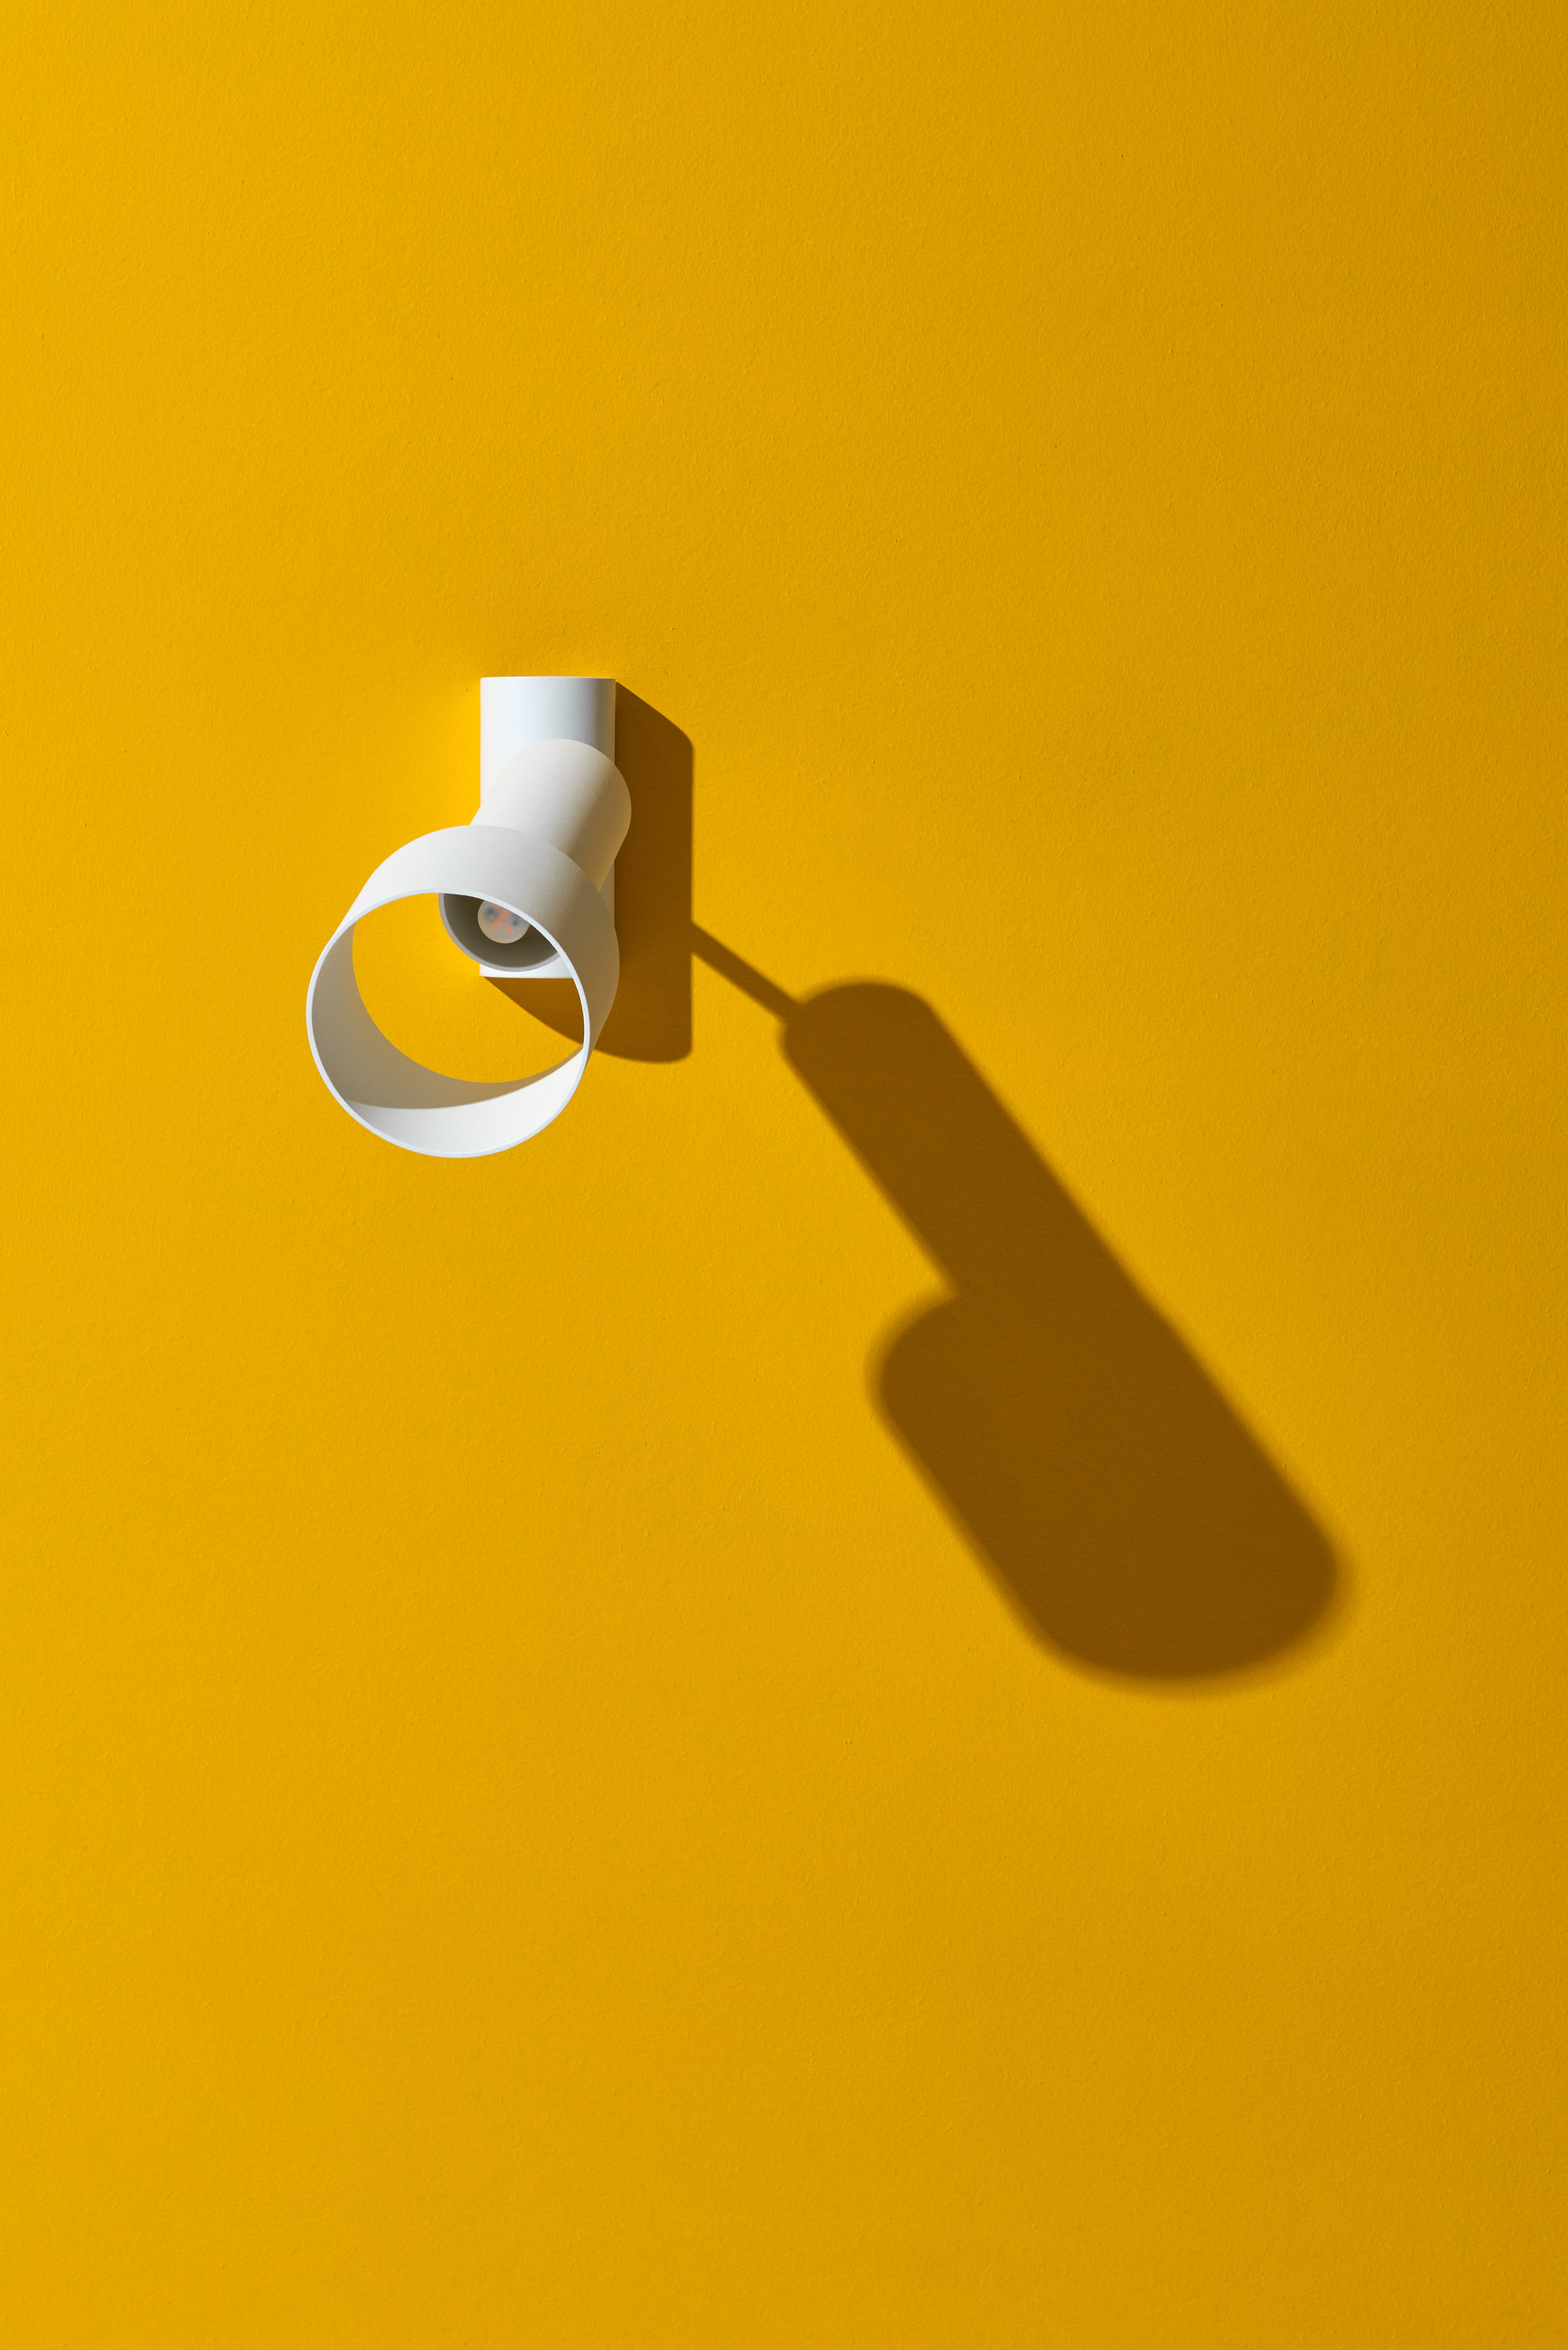 Tangent_Table_Lamp_Frederik_Kurzweg_Design_Studio_04.jpg